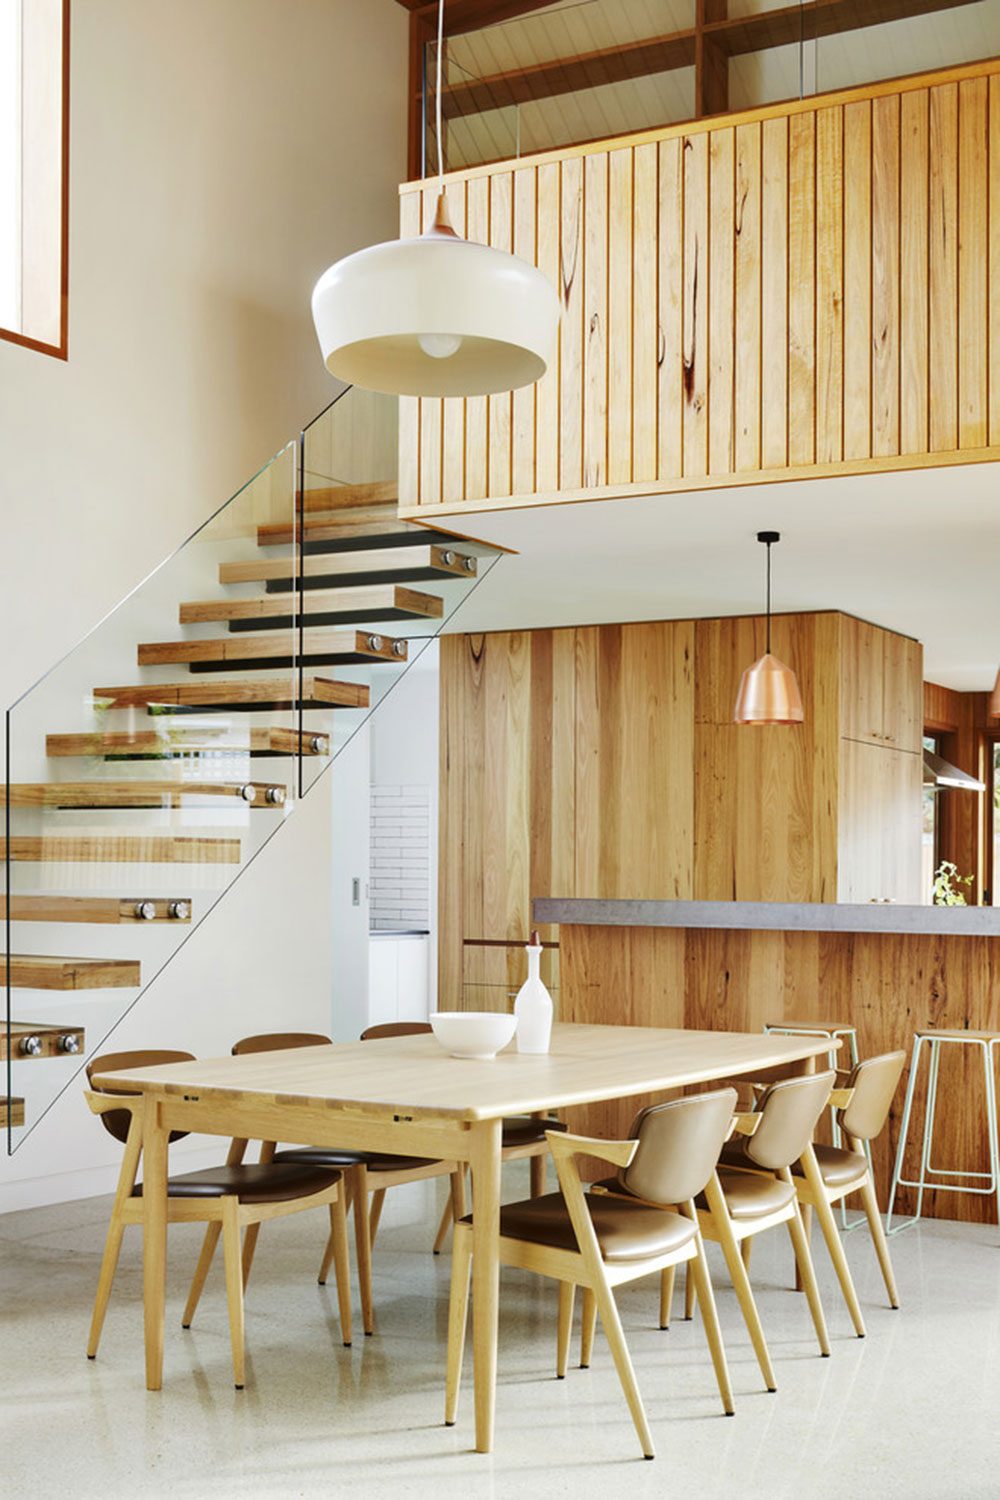 Modern and Exquisite Floating Staircase11 Modern and exquisite floating staircase designs